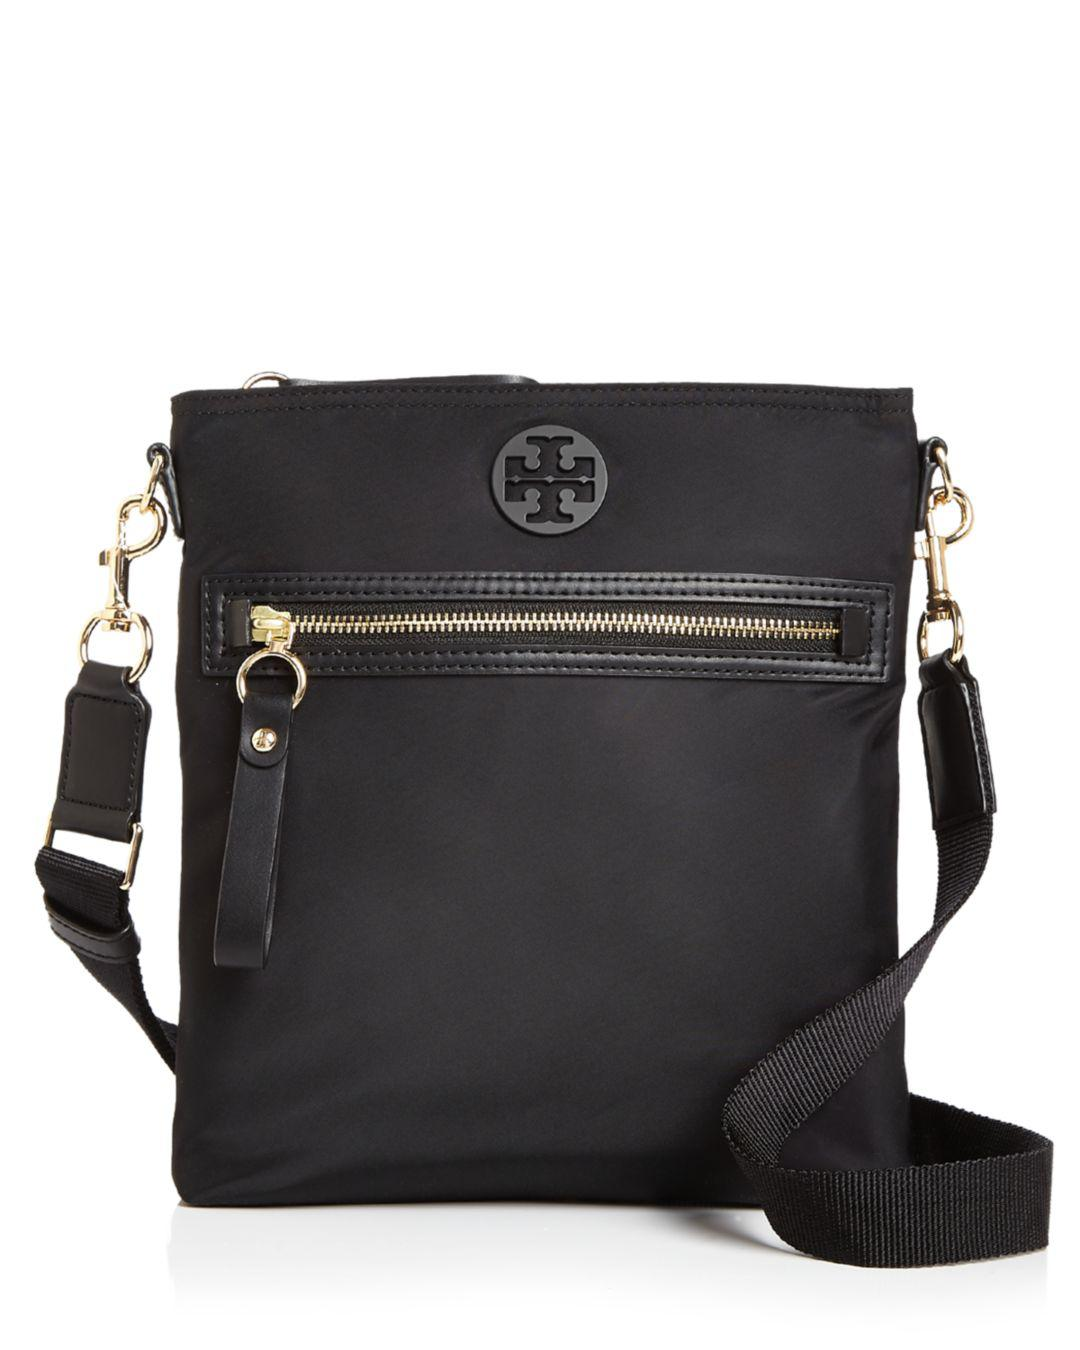 6357dacafb9 Tory Burch Tilda Nylon Swing Pack Crossbody in Black - Lyst